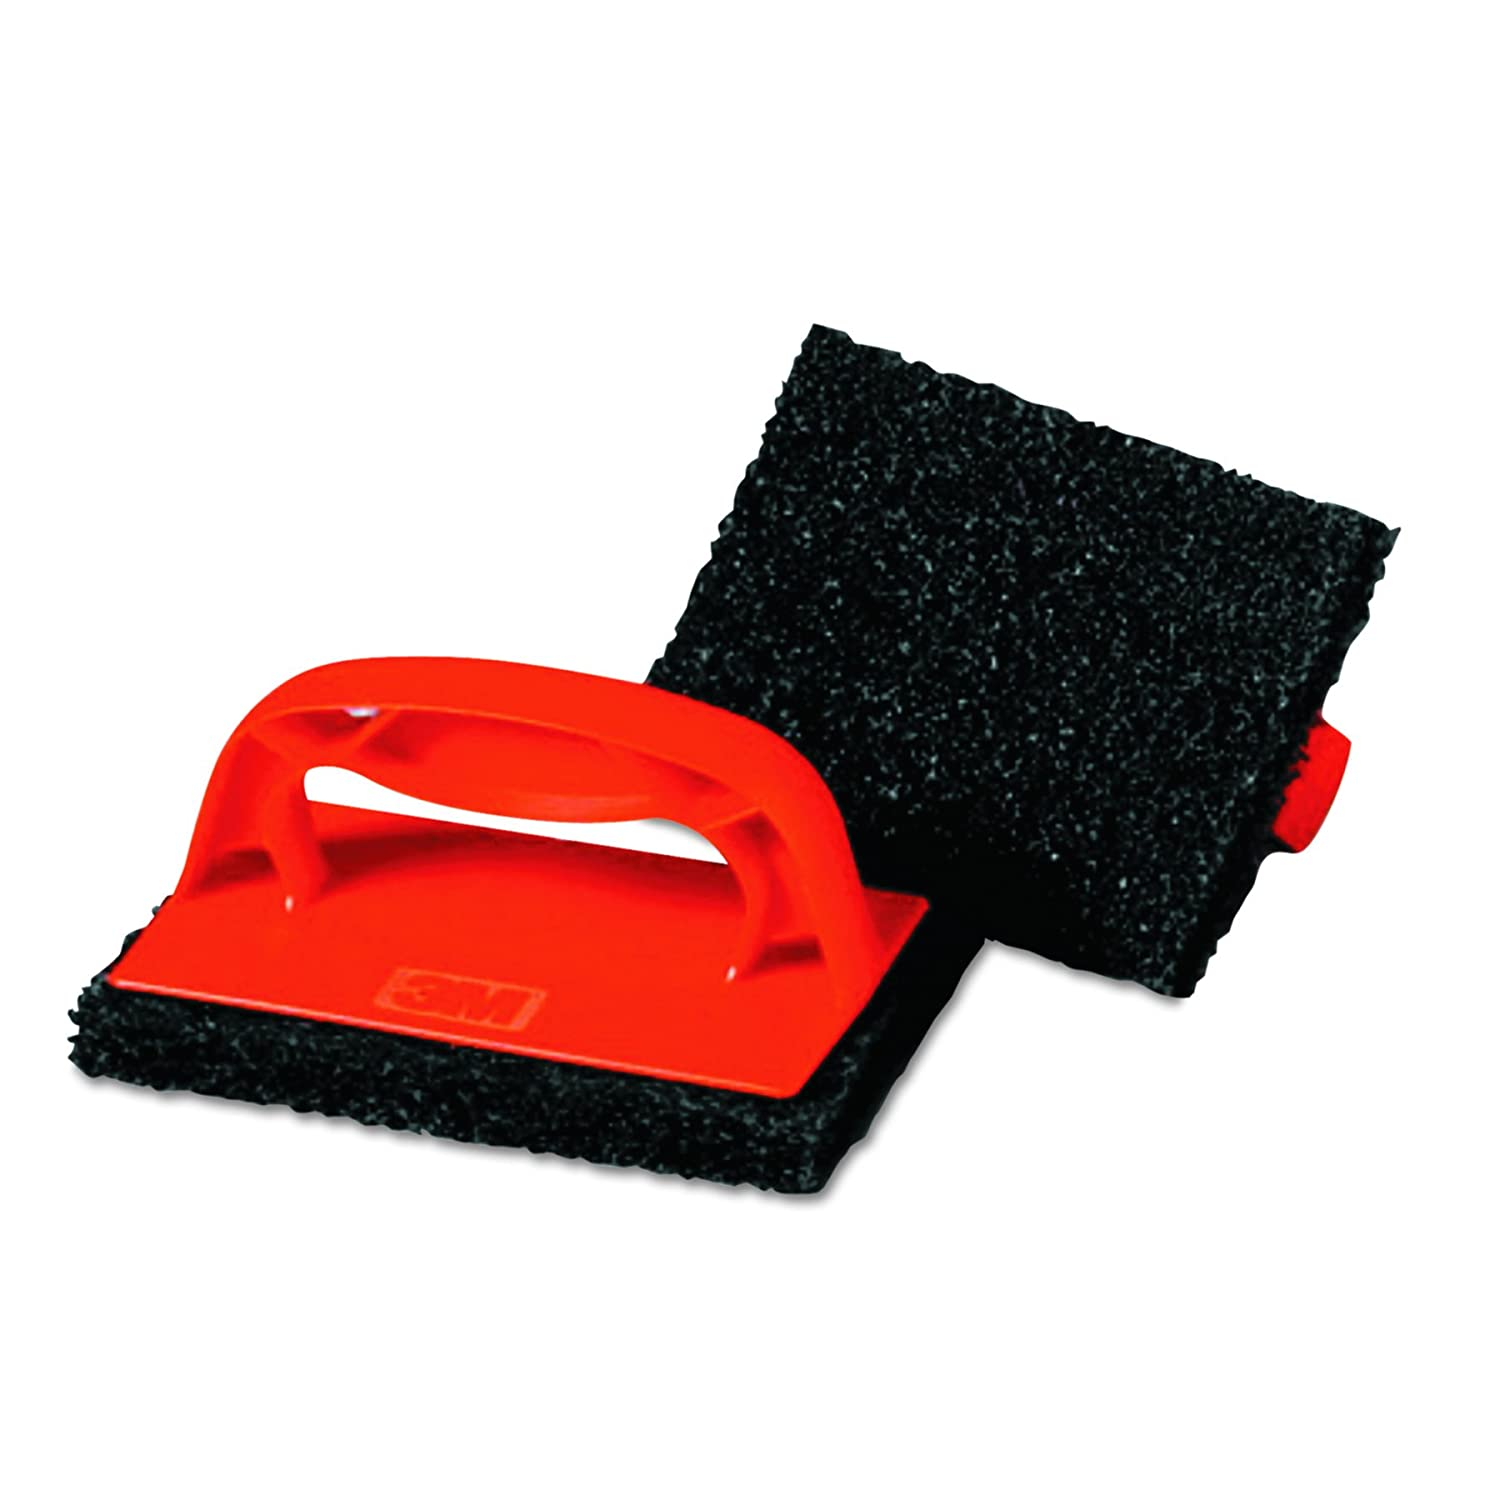 Scotch-Brite PROFESSIONAL 9537 Scotchbrick Griddle Scrubber Super beauty product restock quality top Genuine Free Shipping 4w